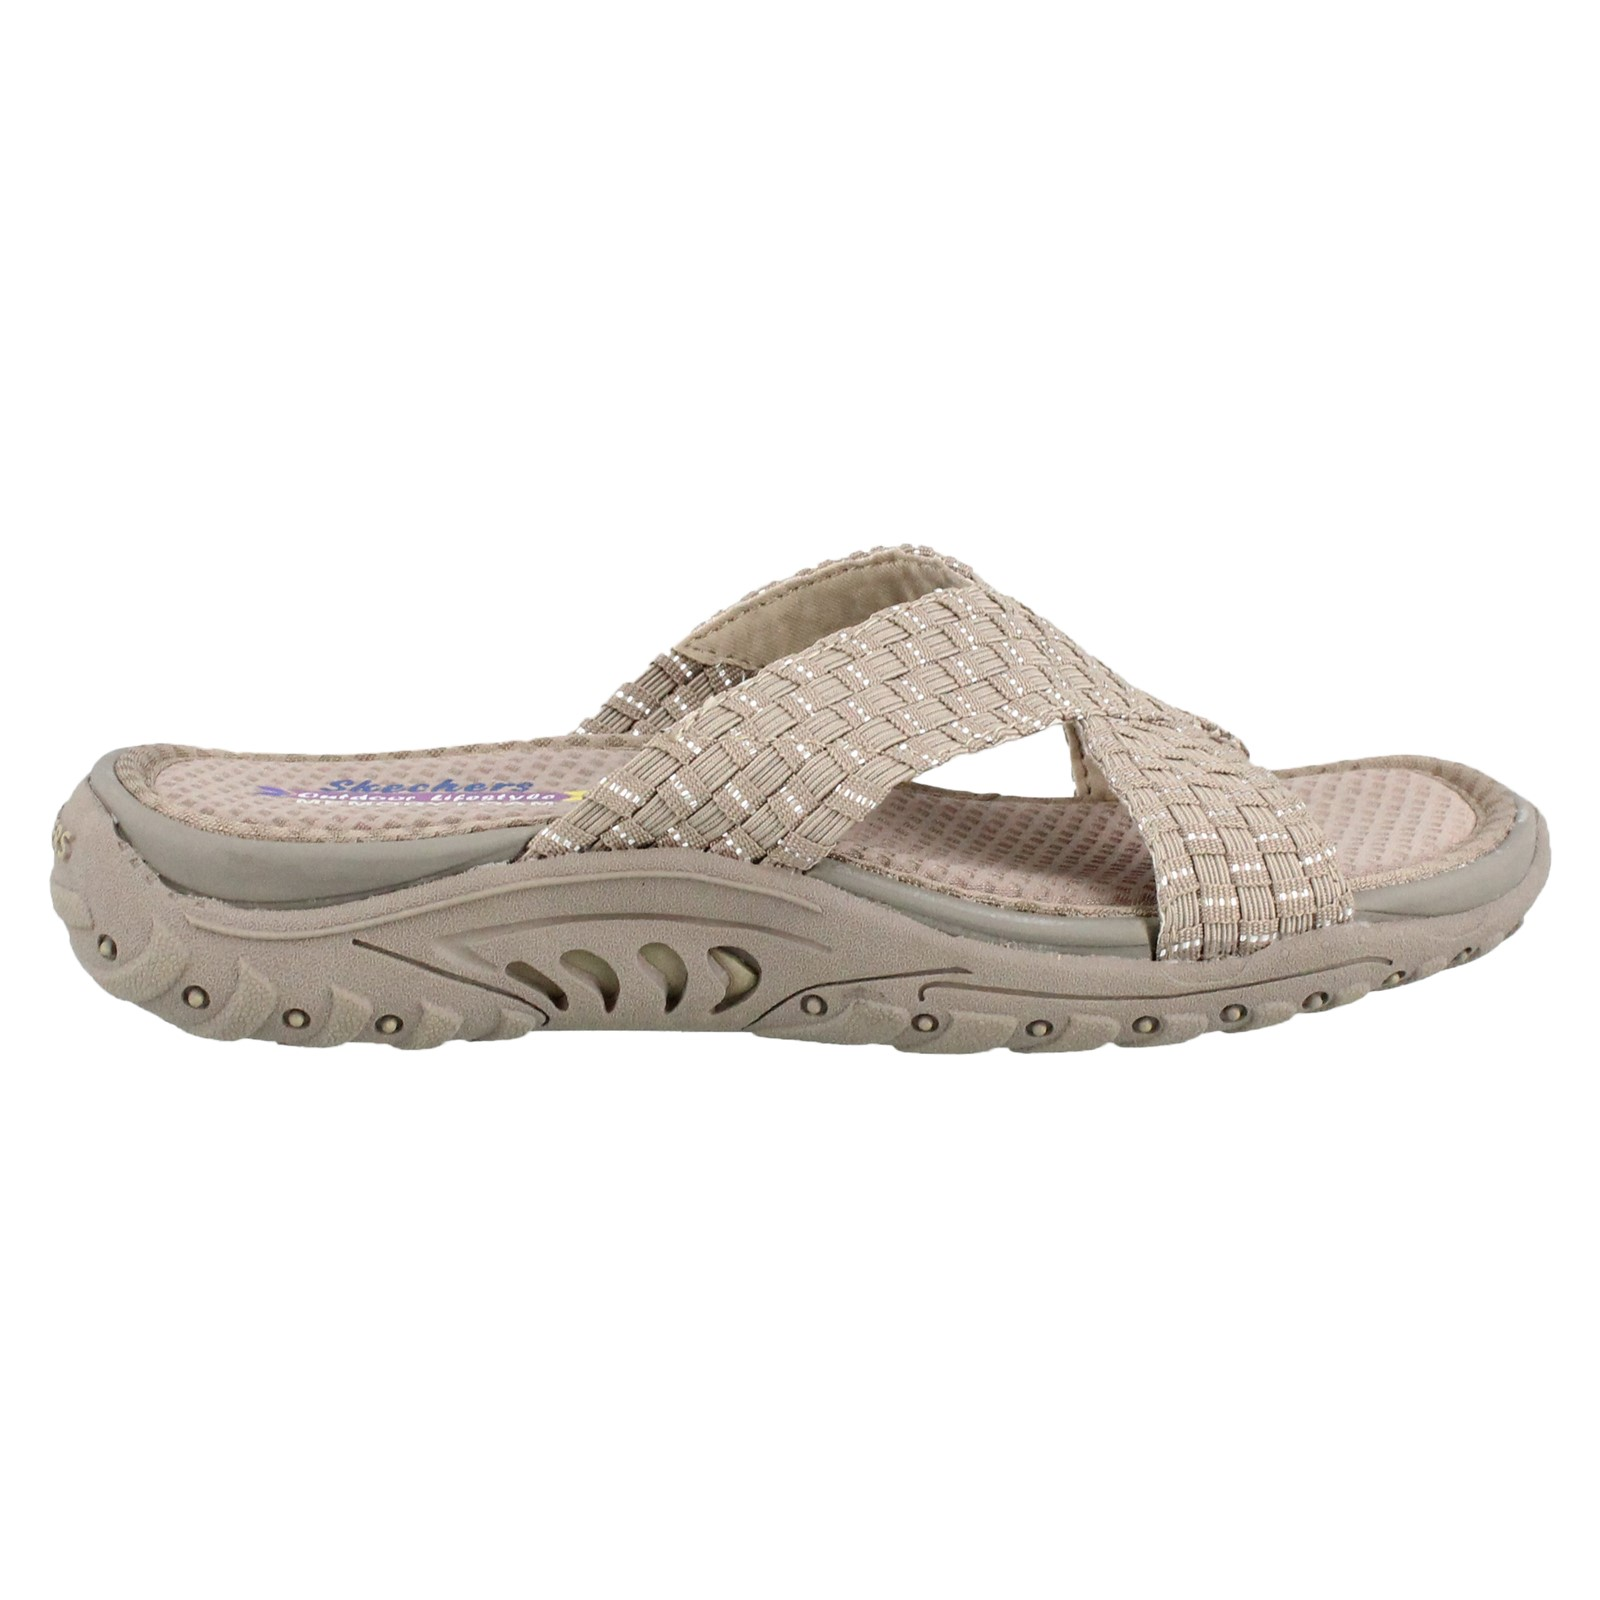 Women's Skechers, Reggae Rootsy Vibe Slide Sandals